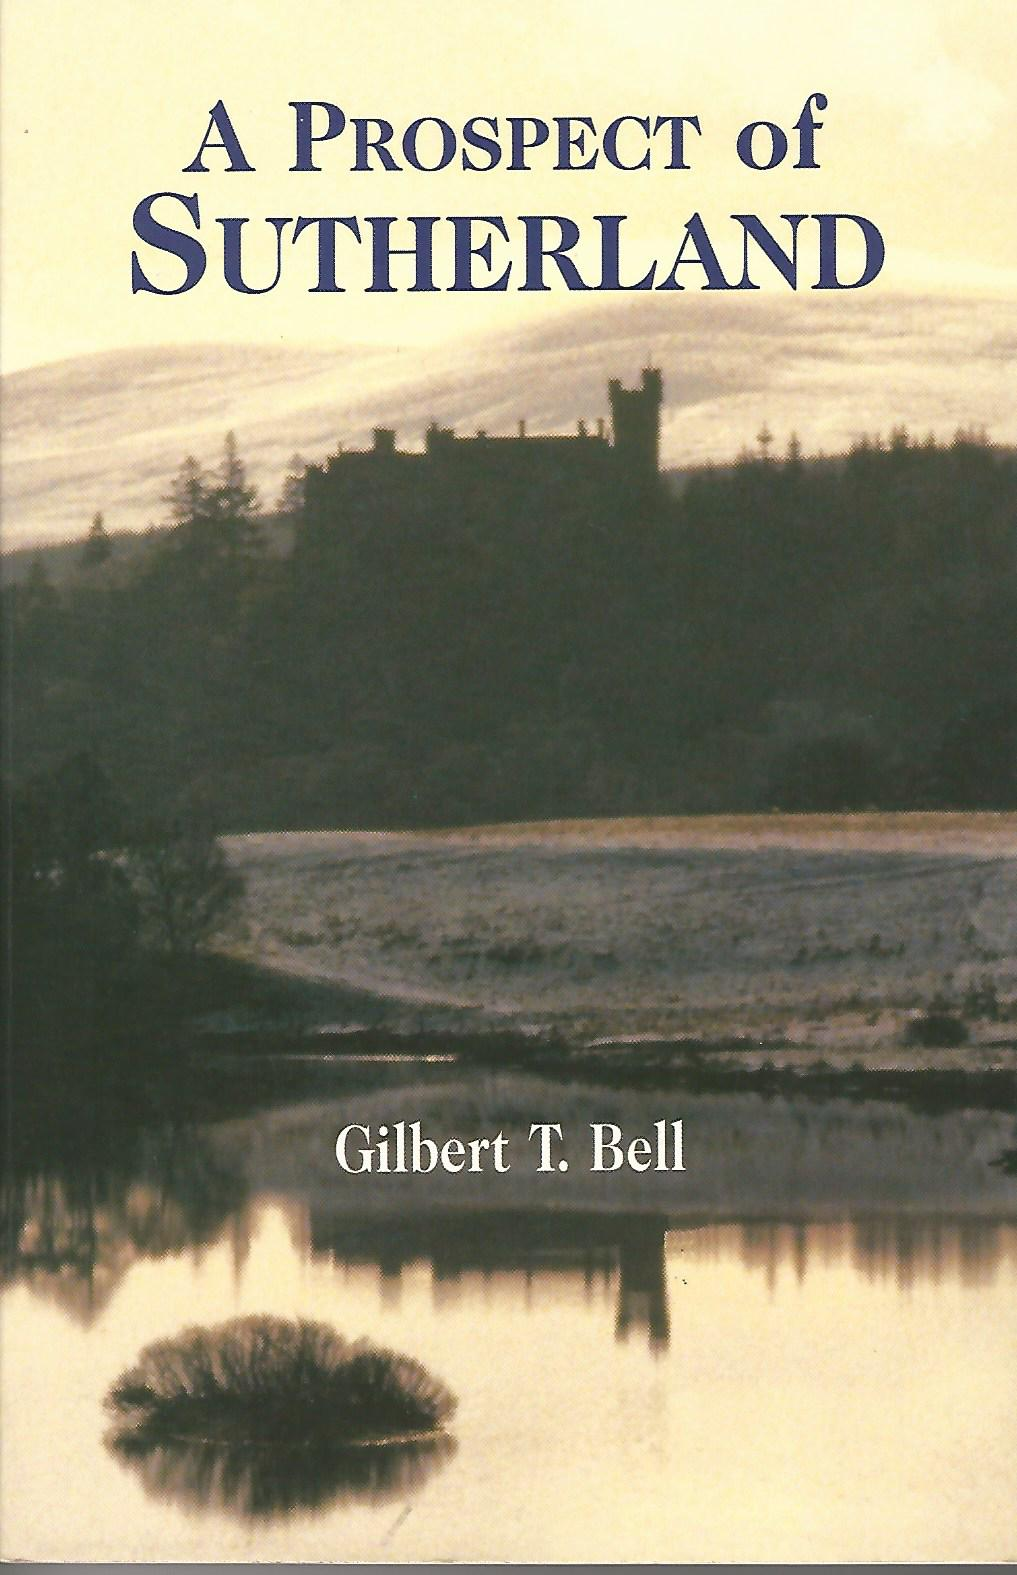 Image for A Prospect of Sutherland: The Building of a Castle and the Making of a Duchess.